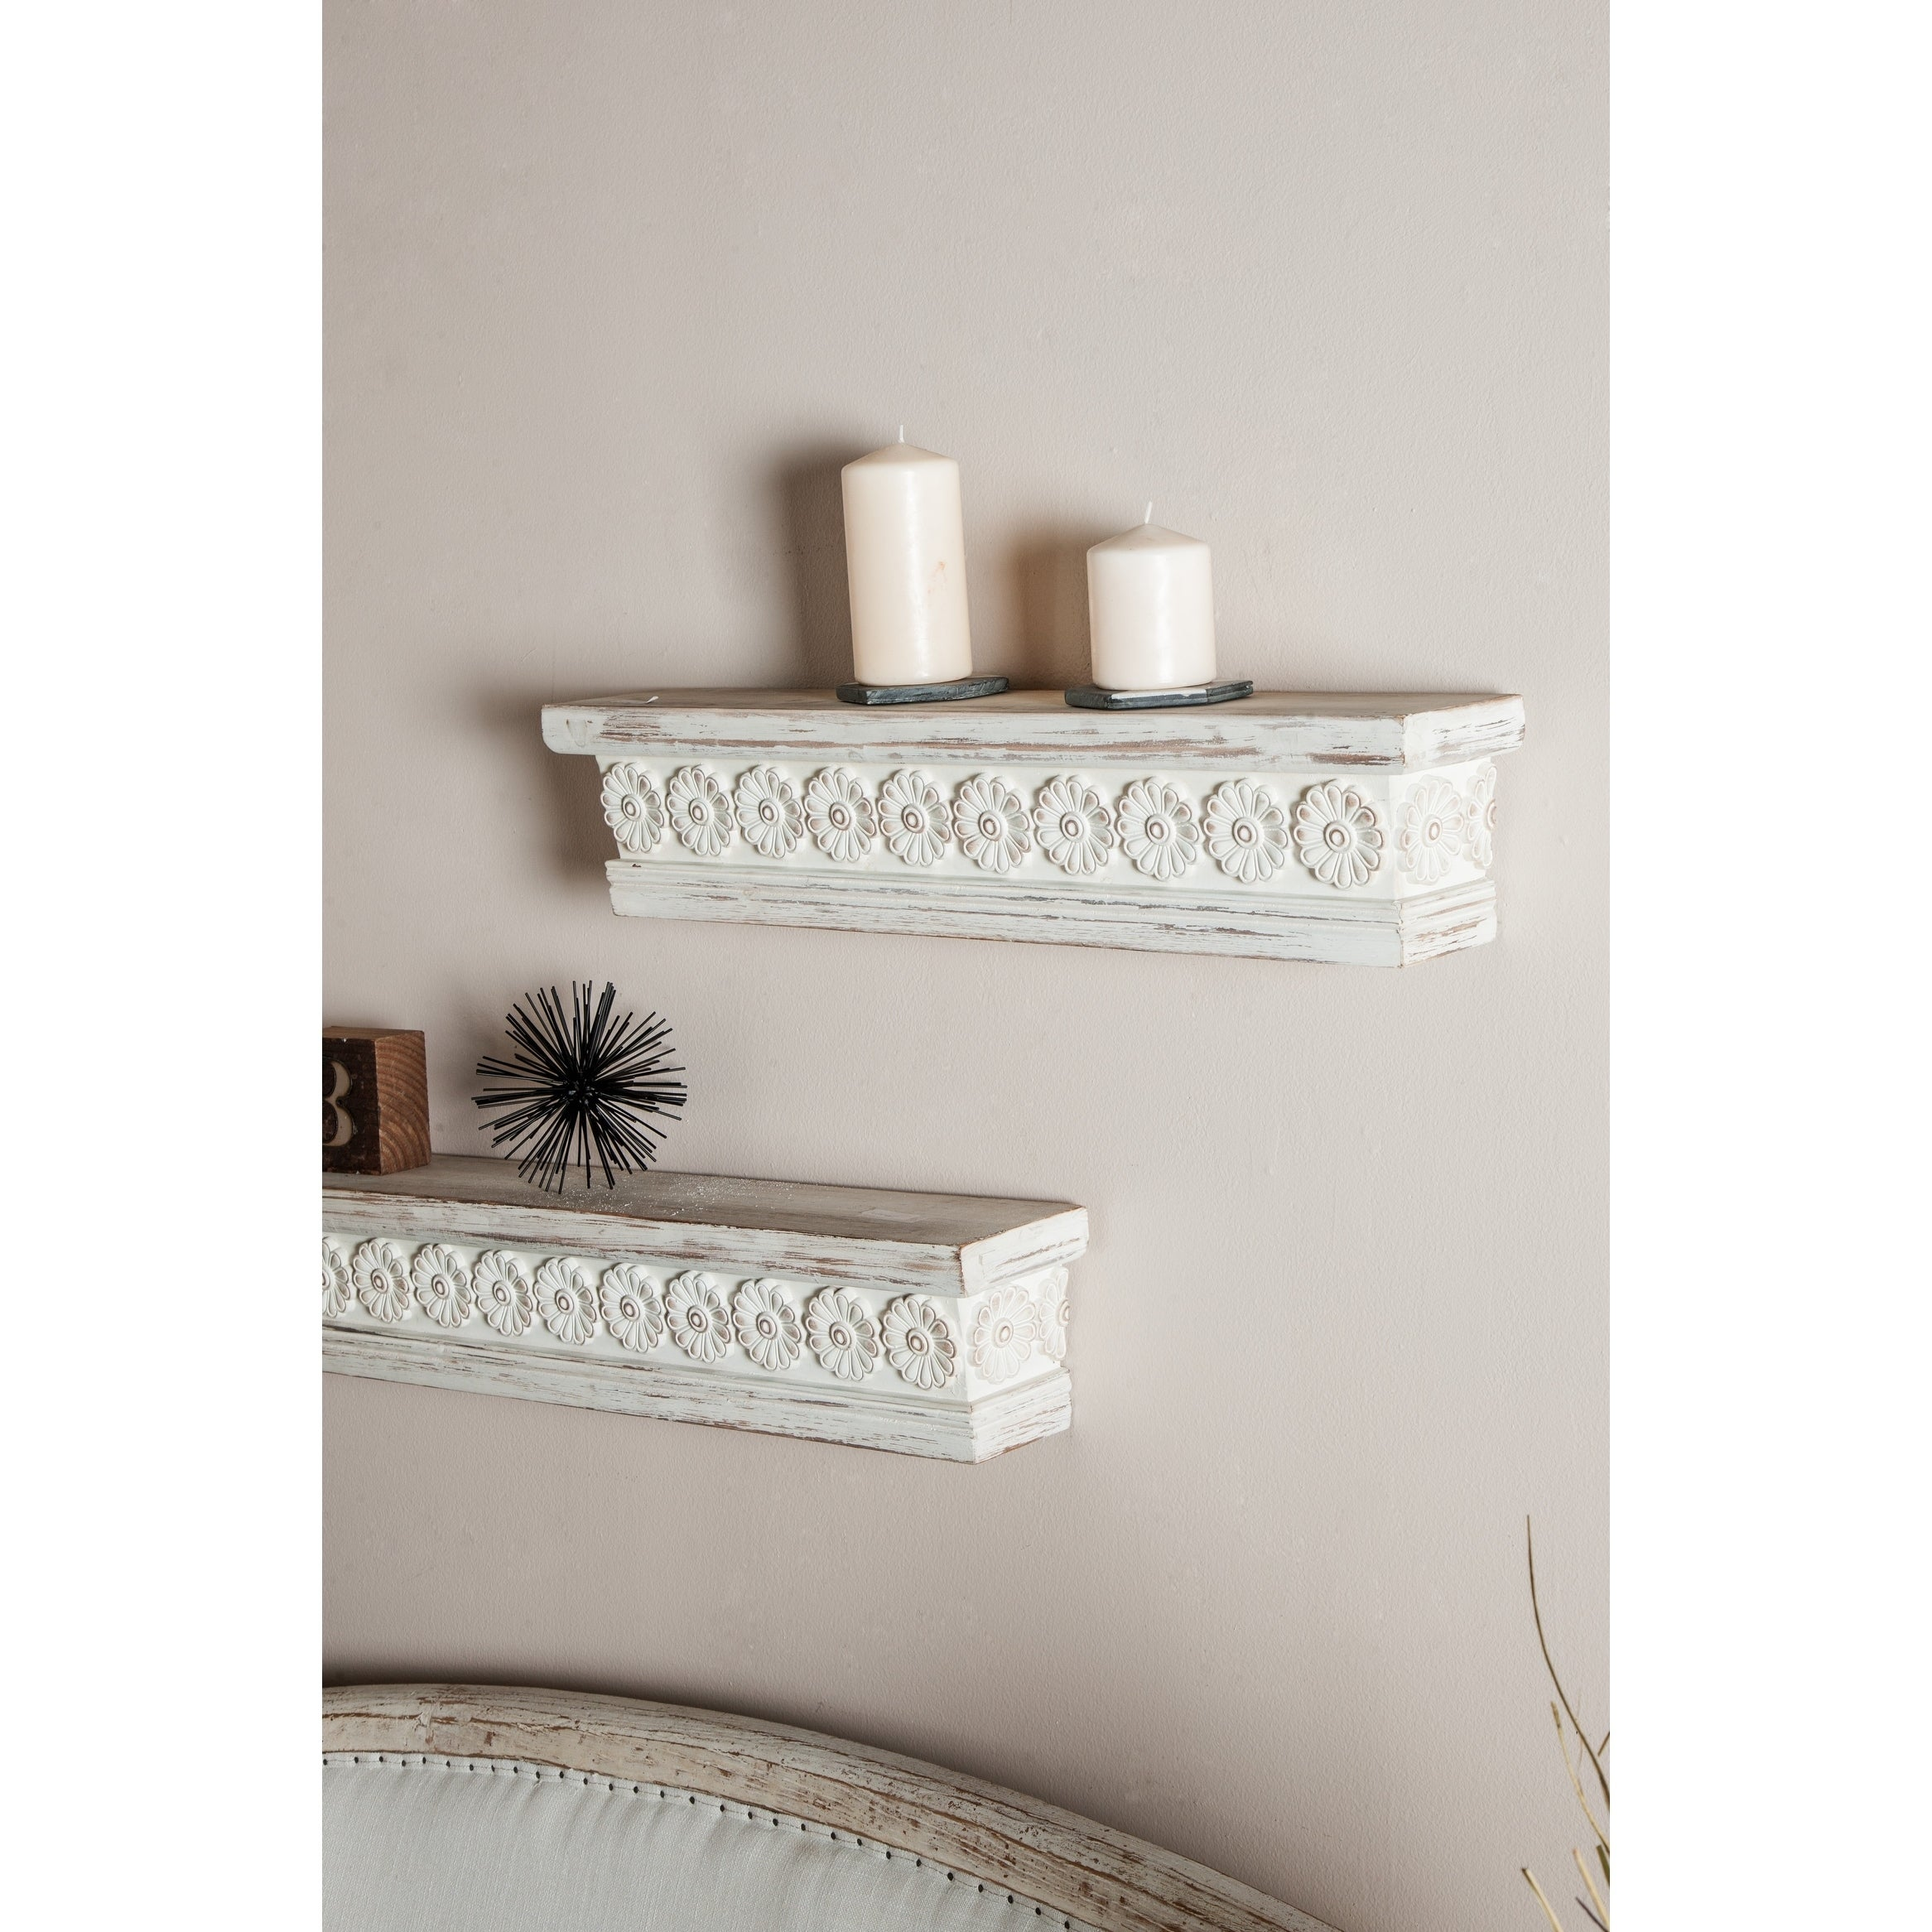 Shop Black Friday Deals On Farmhouse 6 X 28 Inch Distressed White Wooden Wall Shelf By Studio 350 On Sale Overstock 20444949